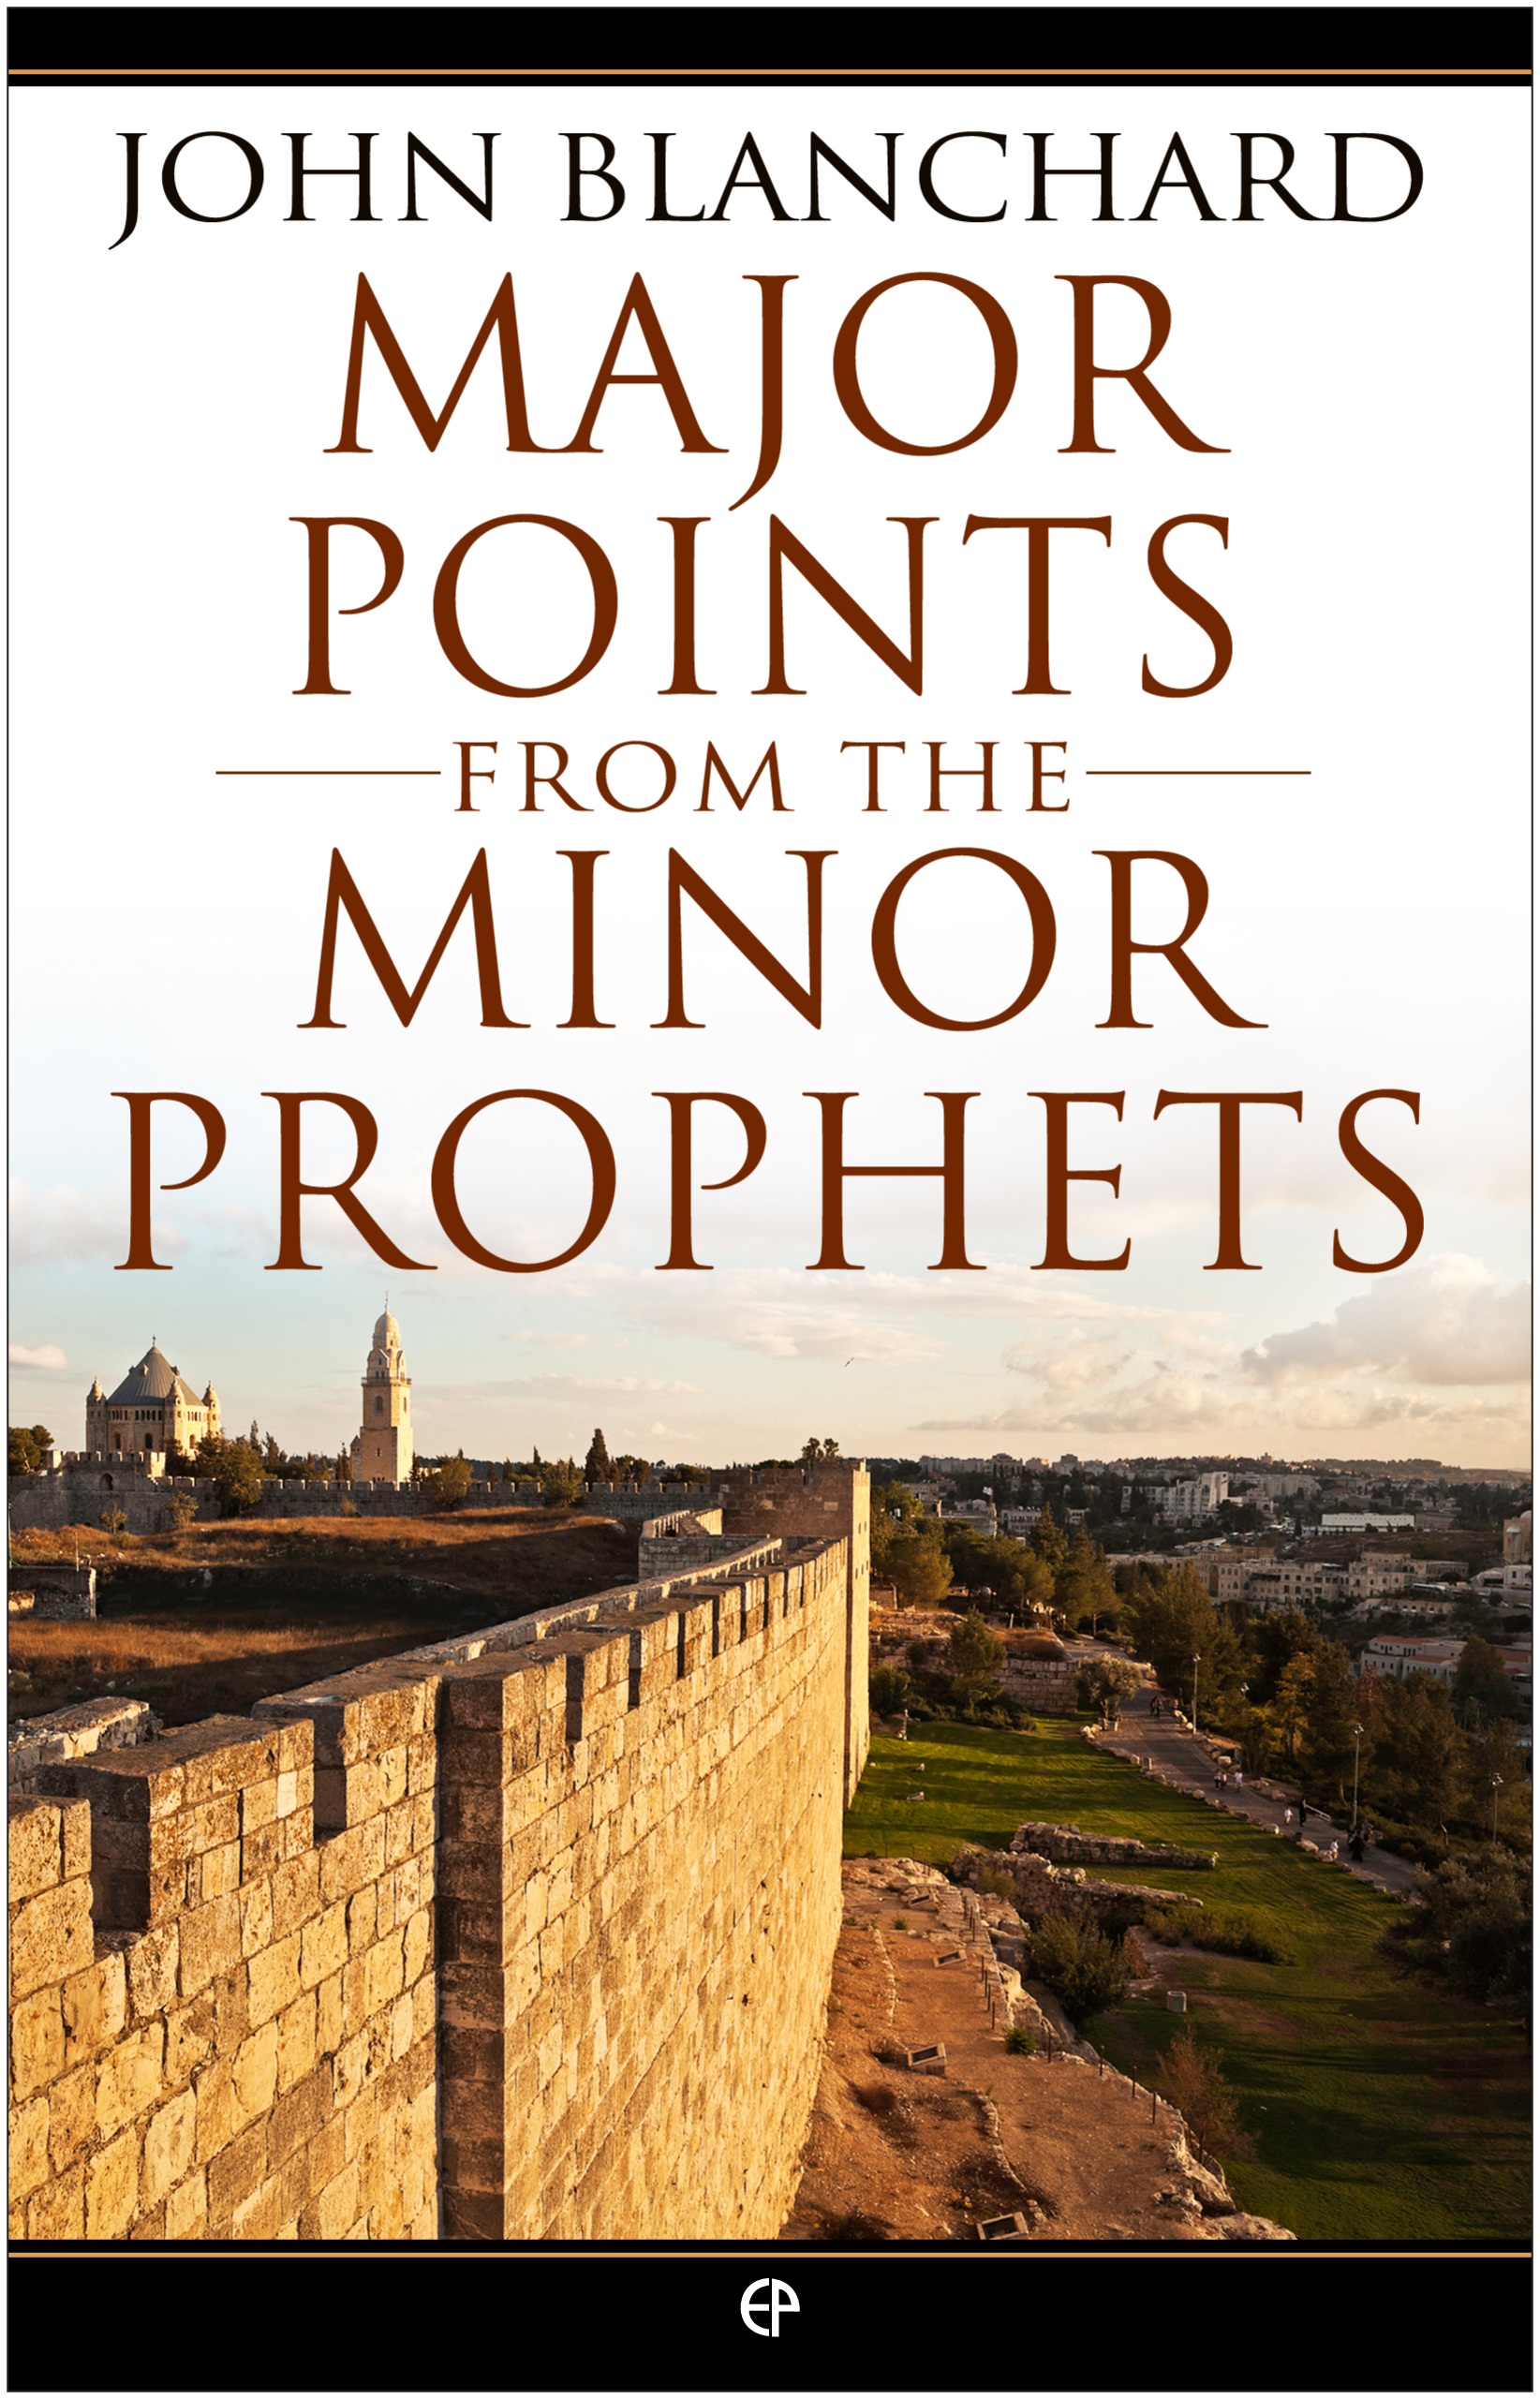 Major Points from the Minor Prophets: The Minor Prophets made accessible and applicable